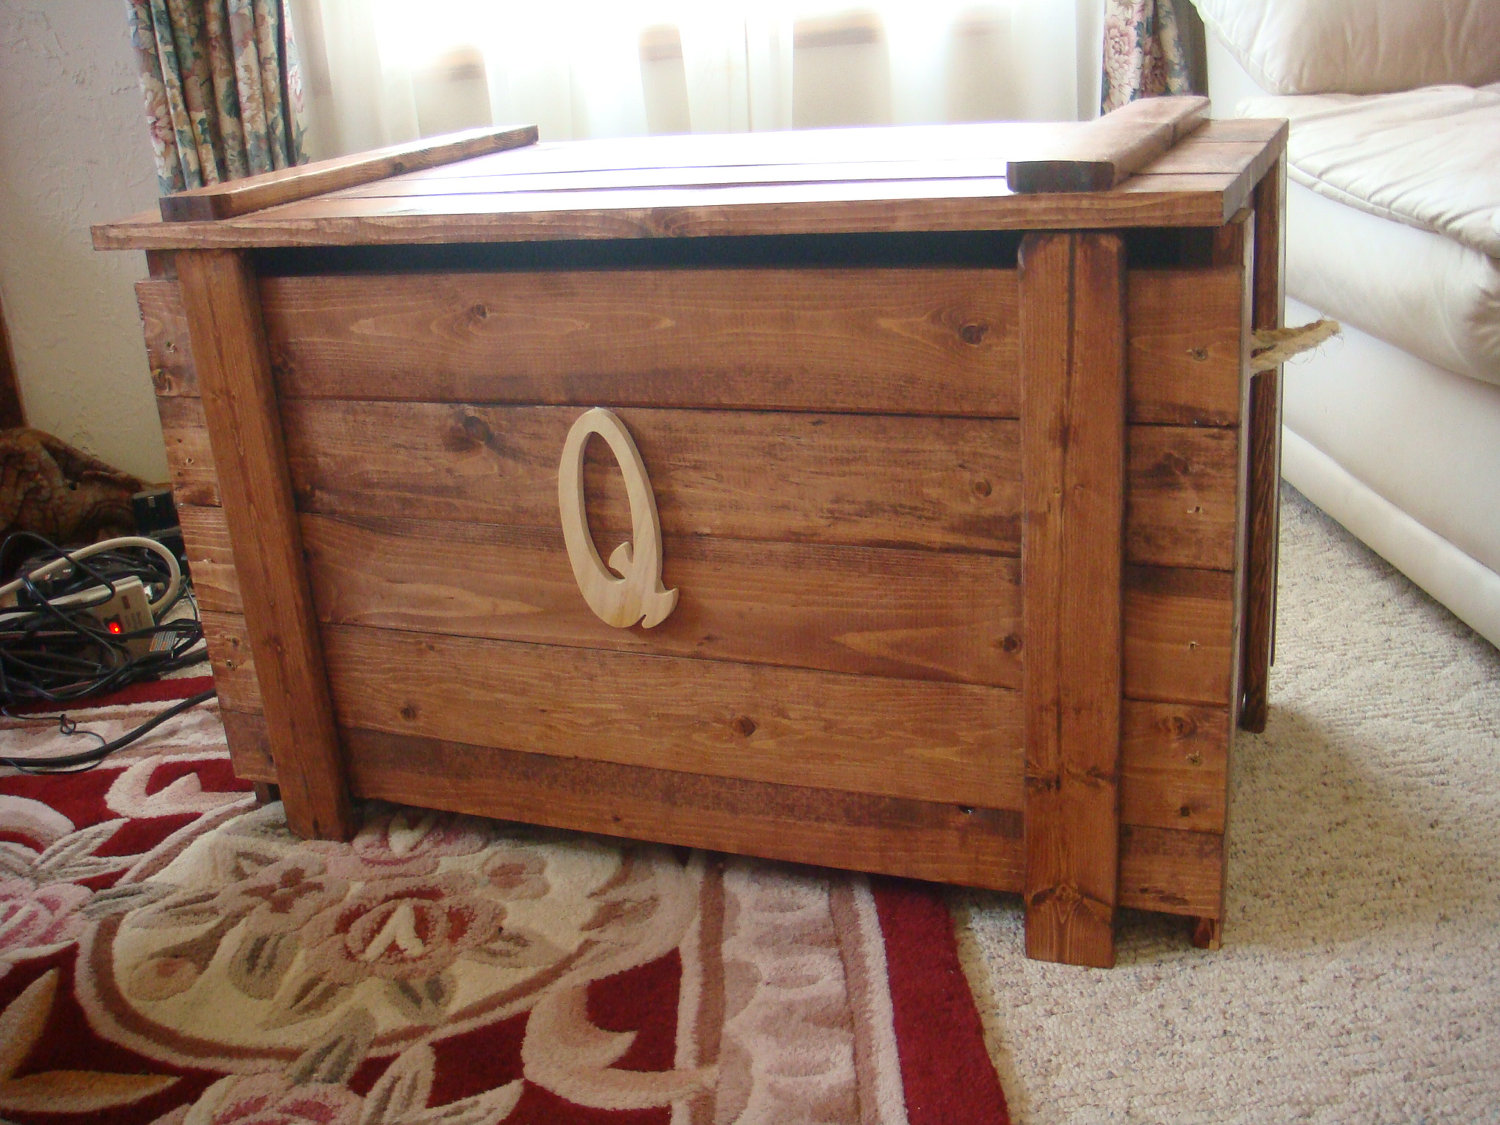 Building a wooden toy box and why they are preferred over